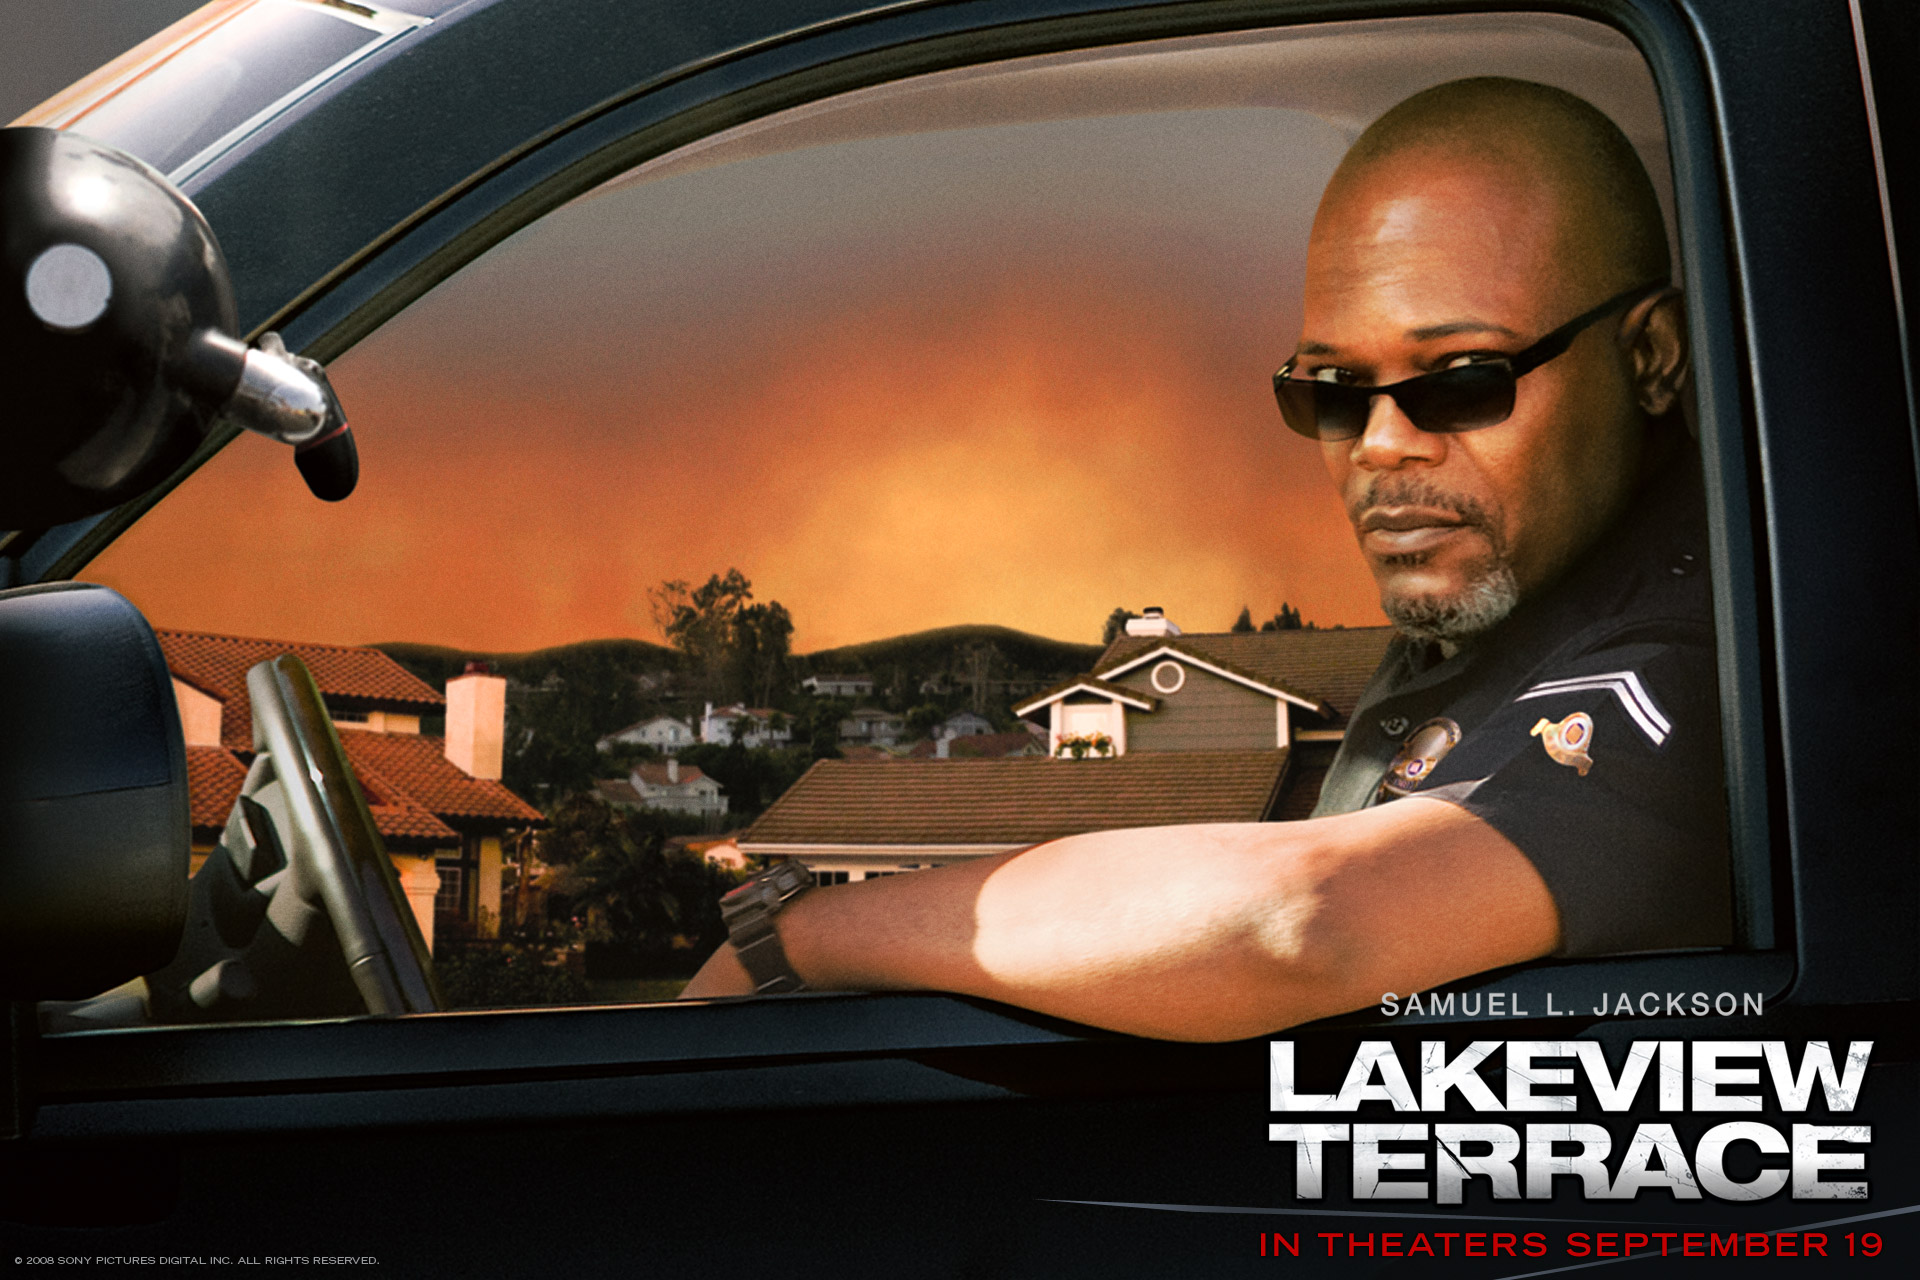 samuel_l_jackson_in_lakeview_terrace_wallpaper-other.jpg